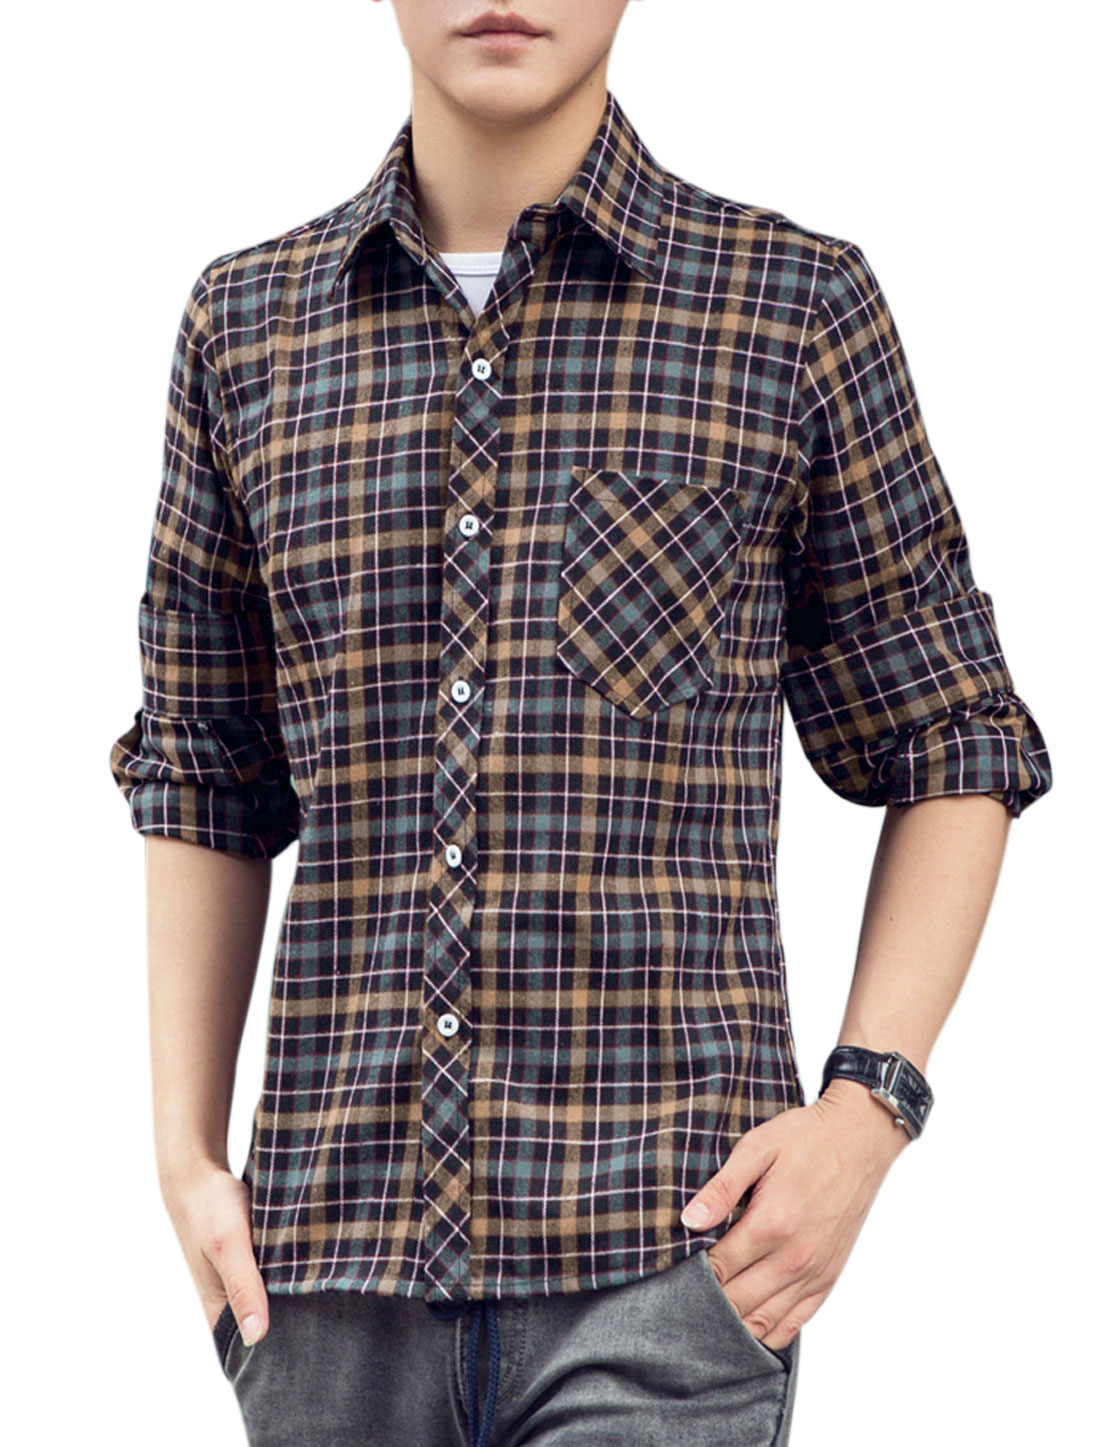 Men Leisure All Over Plaids Breast Pocket Button-Up Shirt Khaki Teal Green M